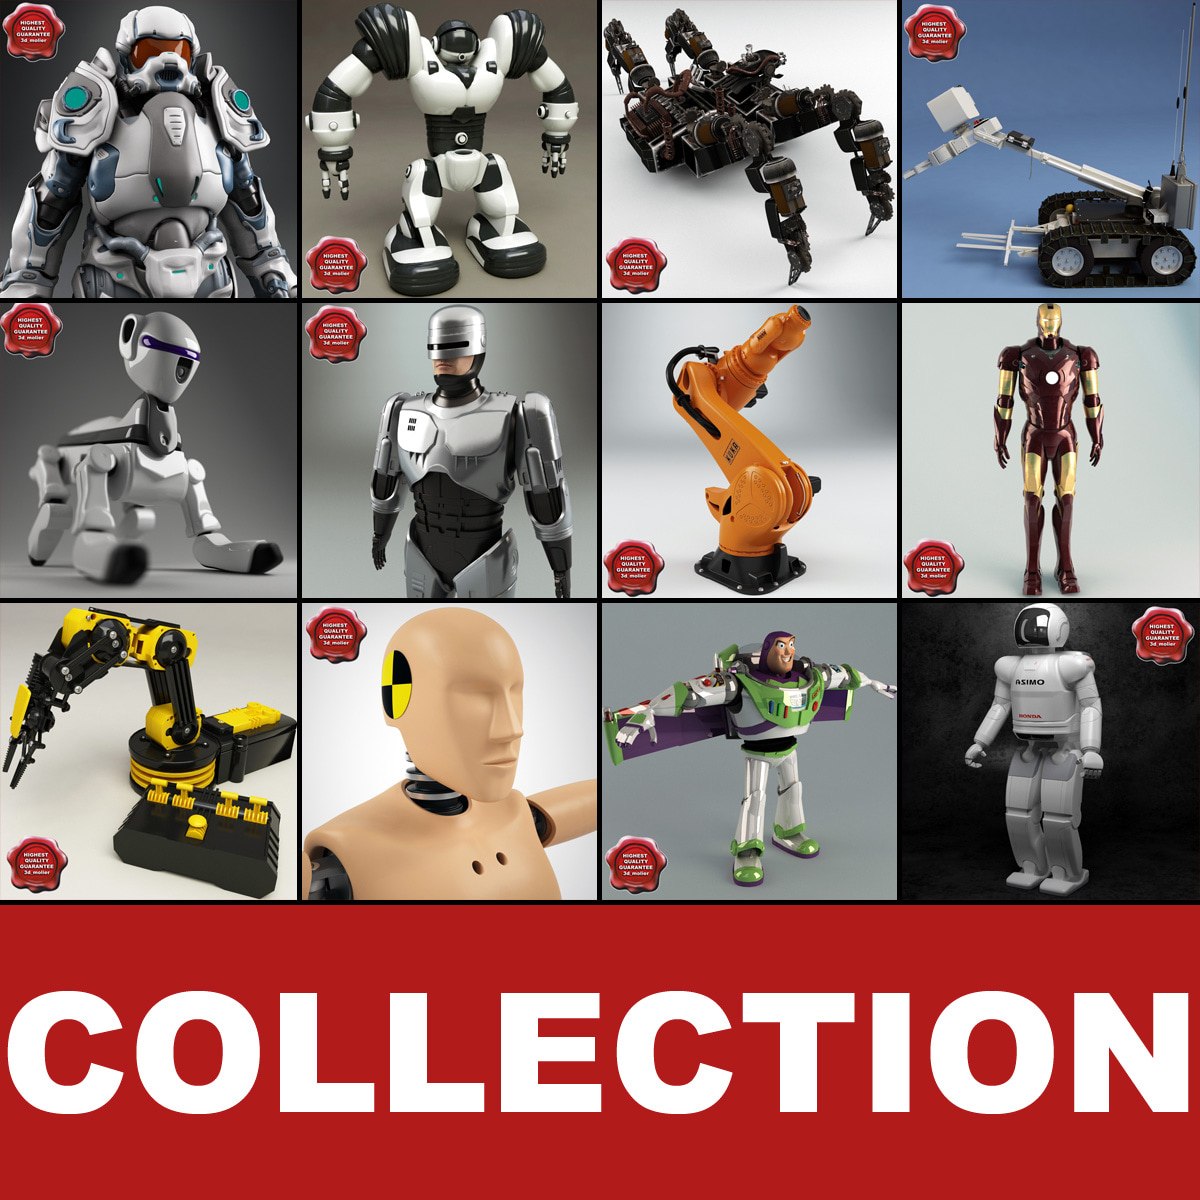 Robots_Collection_V5_000.jpg